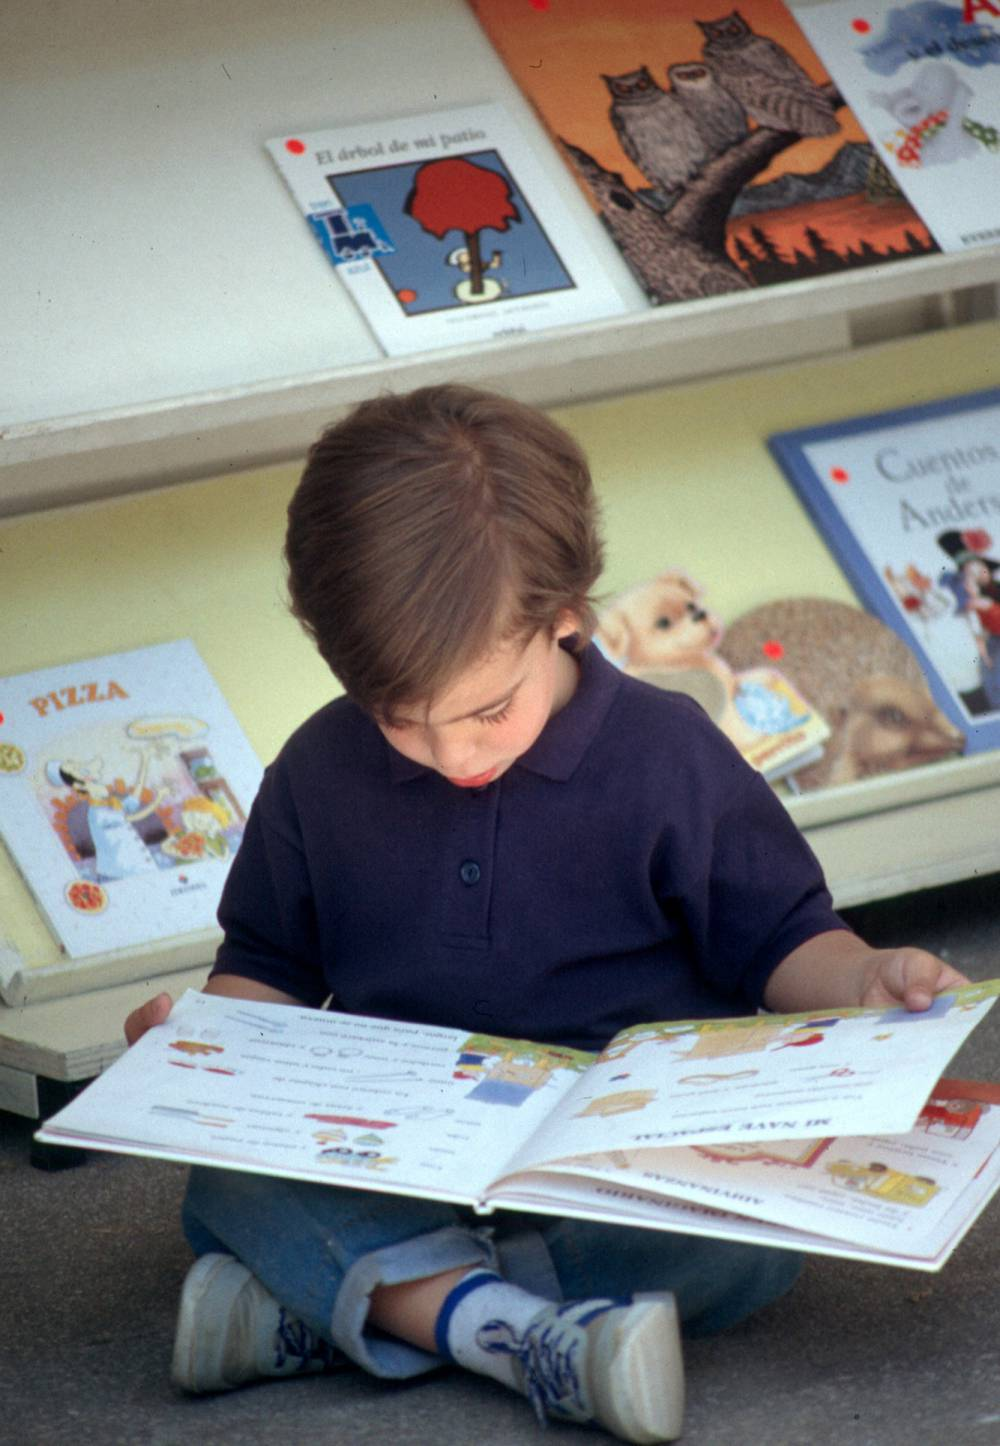 5 things you should keep in mind when choosing your children's books